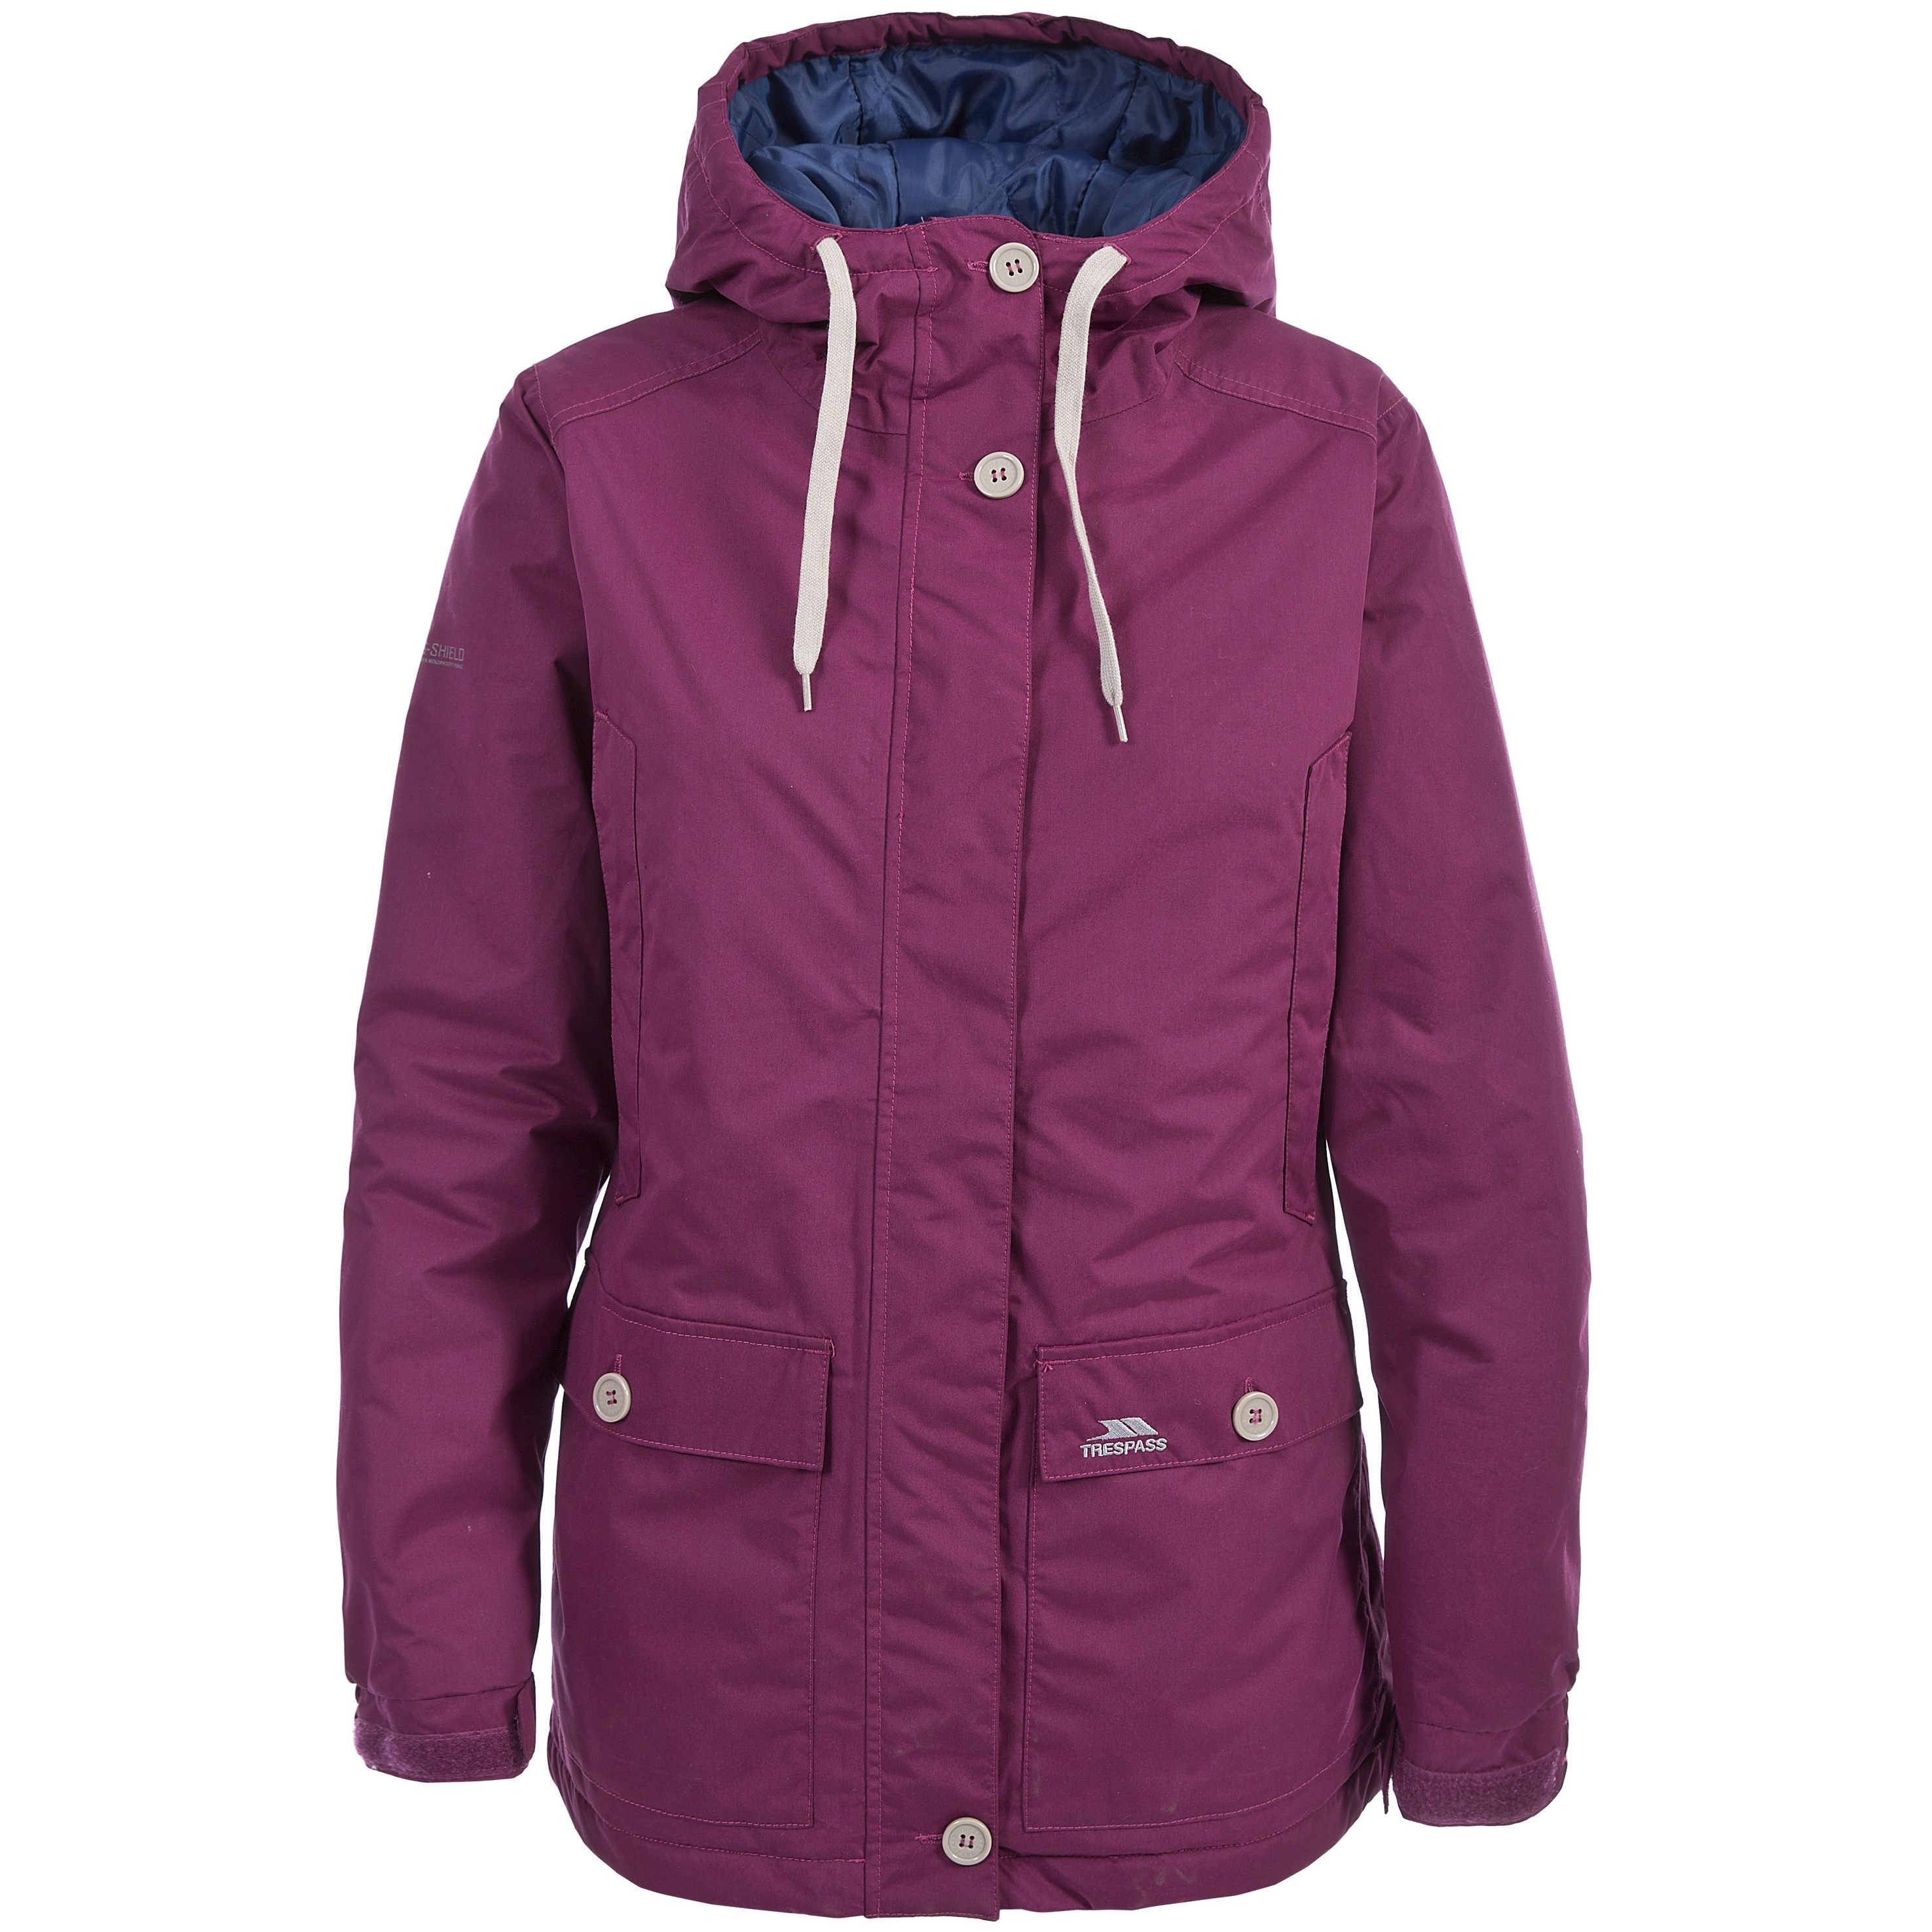 Excellent coat, really does the job. Kudos to the manufacturer, this is a very stylish, waterproof jacket that is just as warm, if not warmer than the traditional very big and bulky coats I .